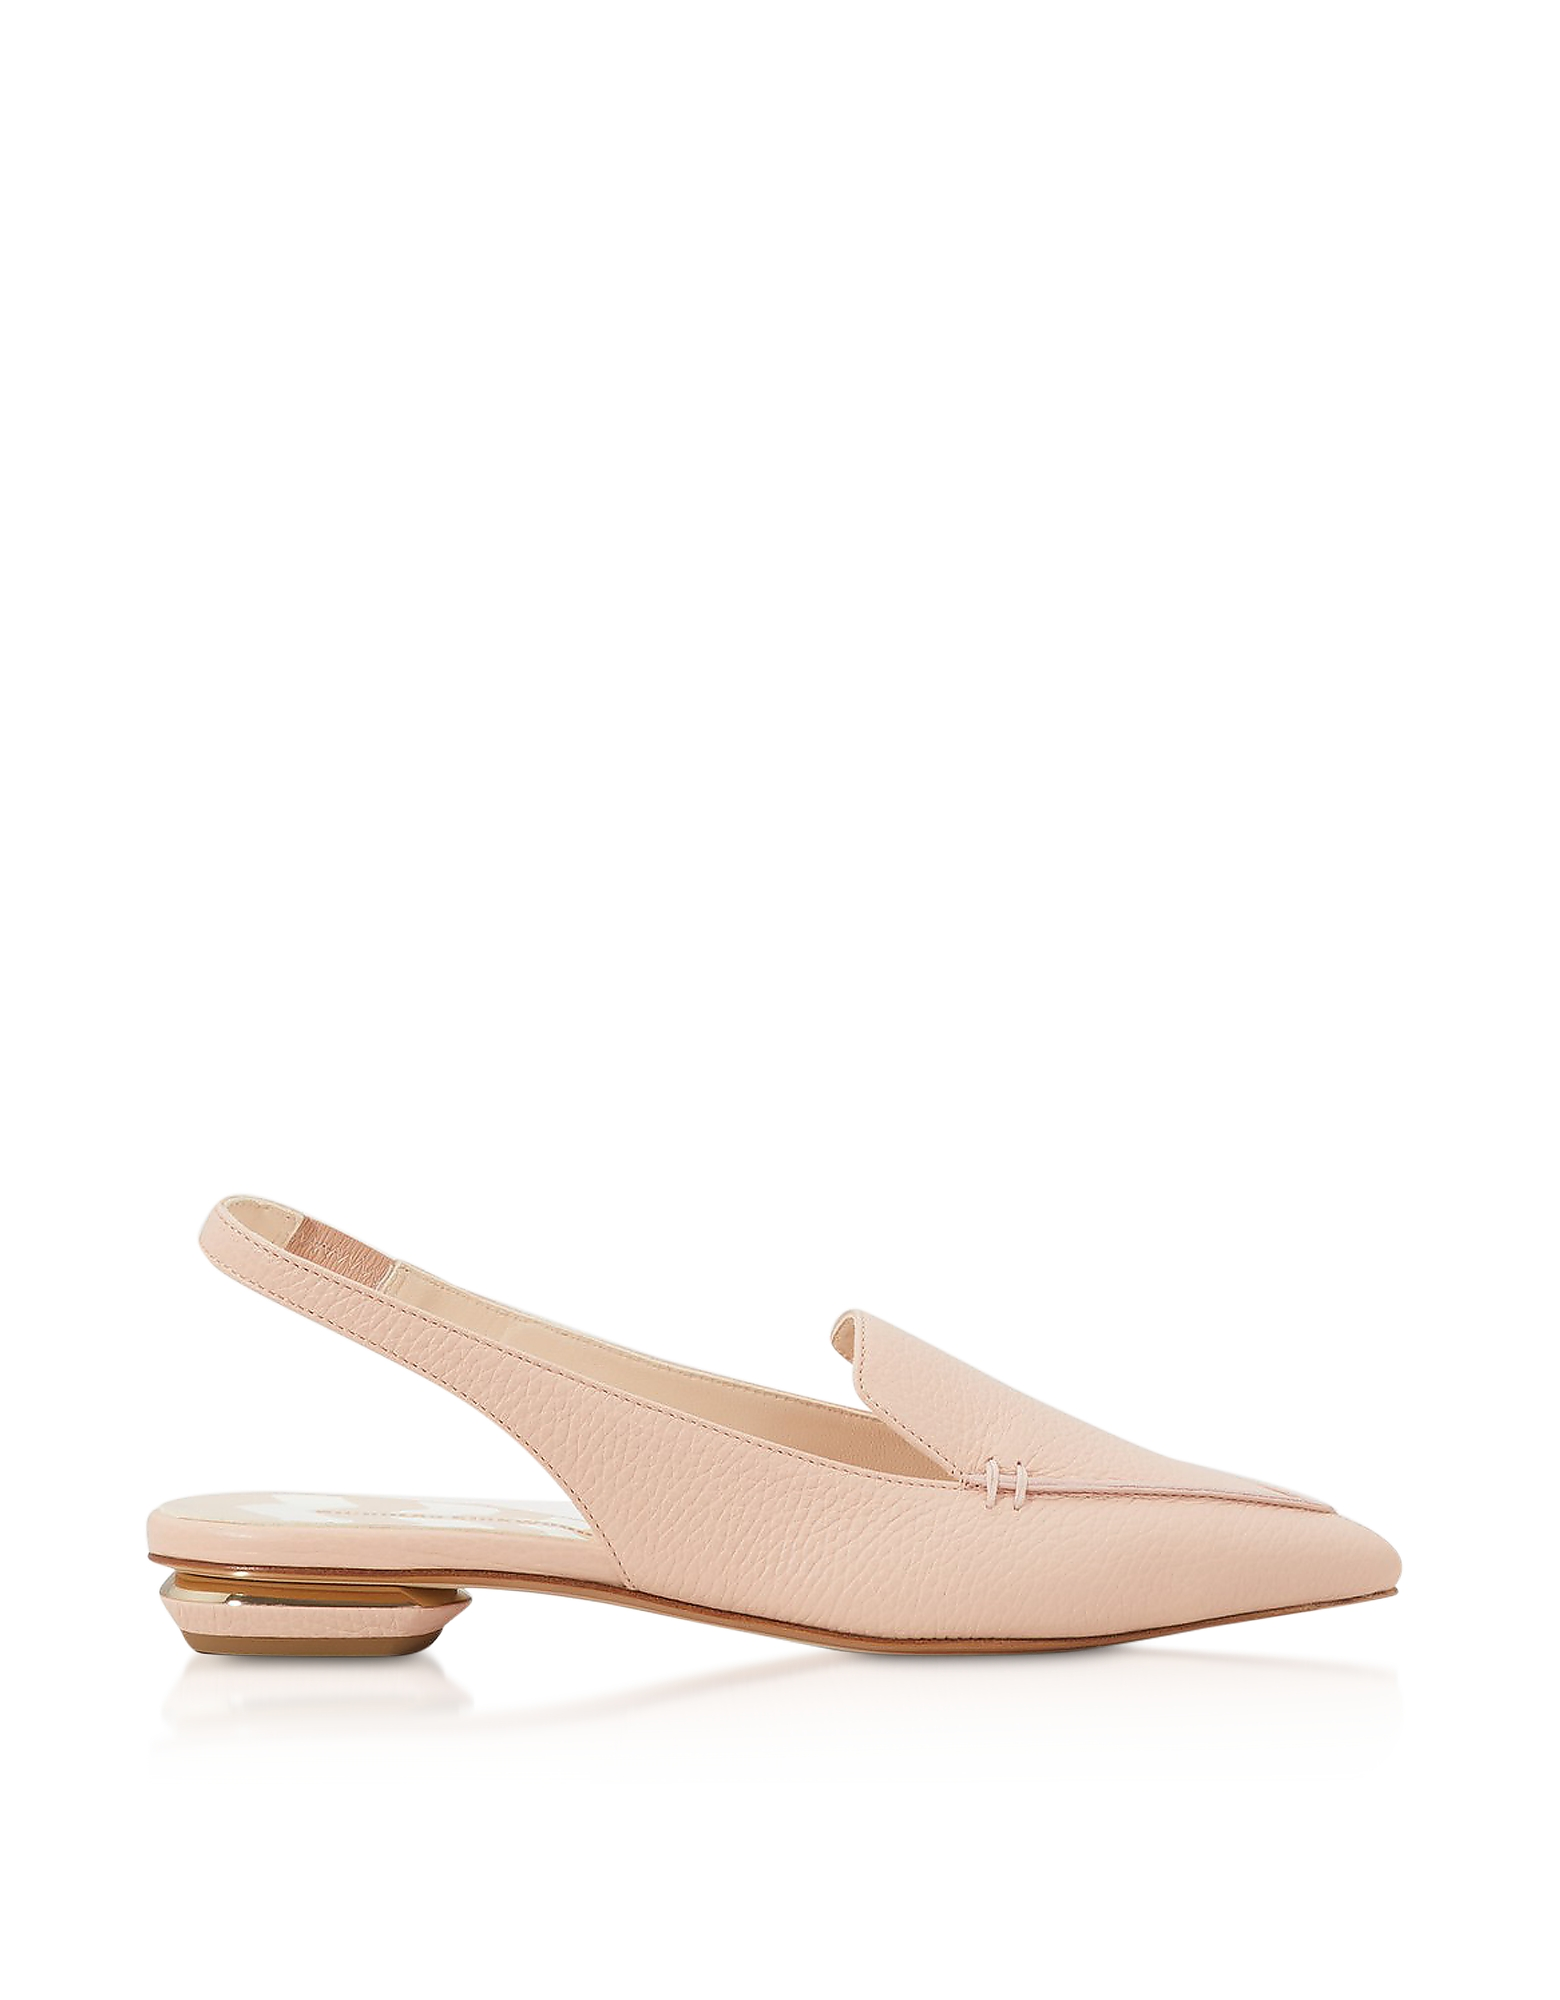 Powder Pink Grainy Leather 18mm Beya SlingBack Ballerinas